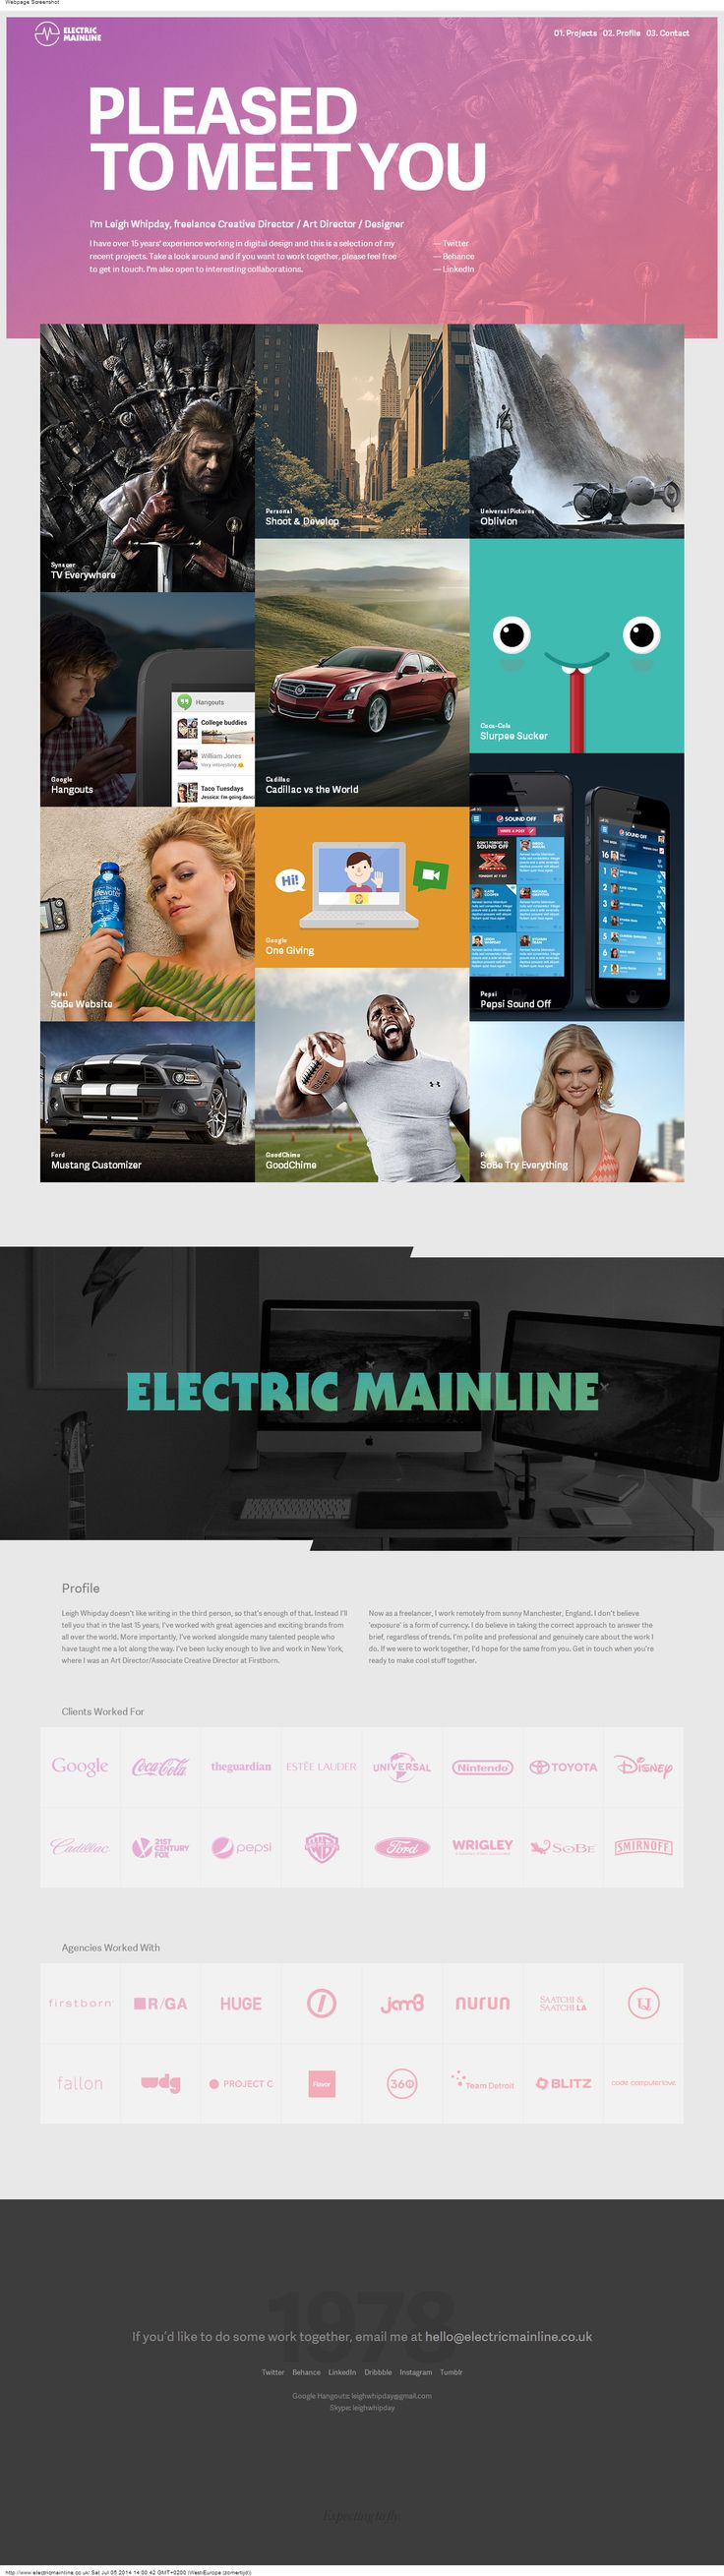 Portfolio website freelancer | http://www.electricmainline.co.uk/